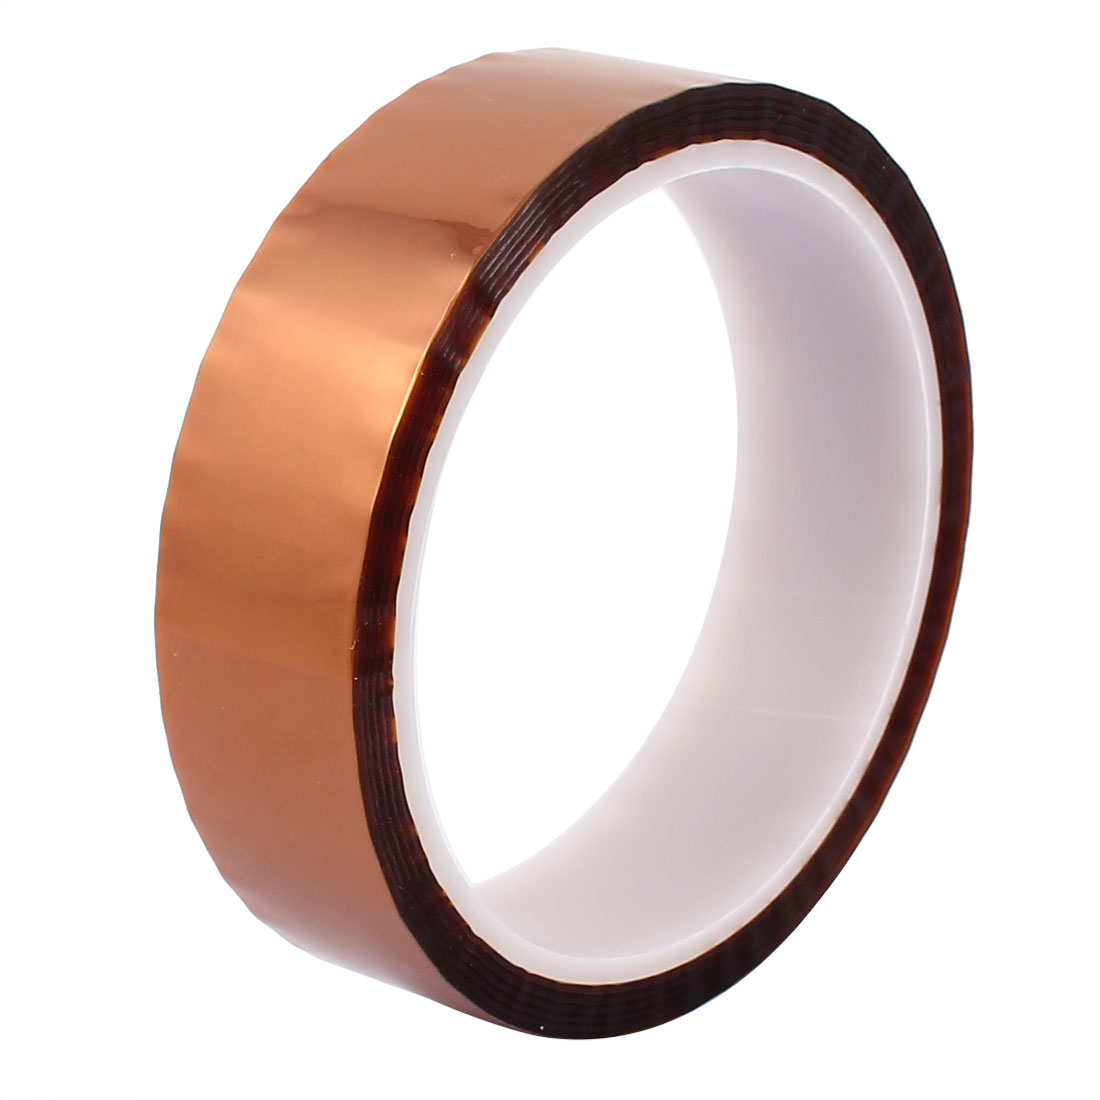 25mm Width 33M Length High Temperature Heat Resistant Polyimide Tape